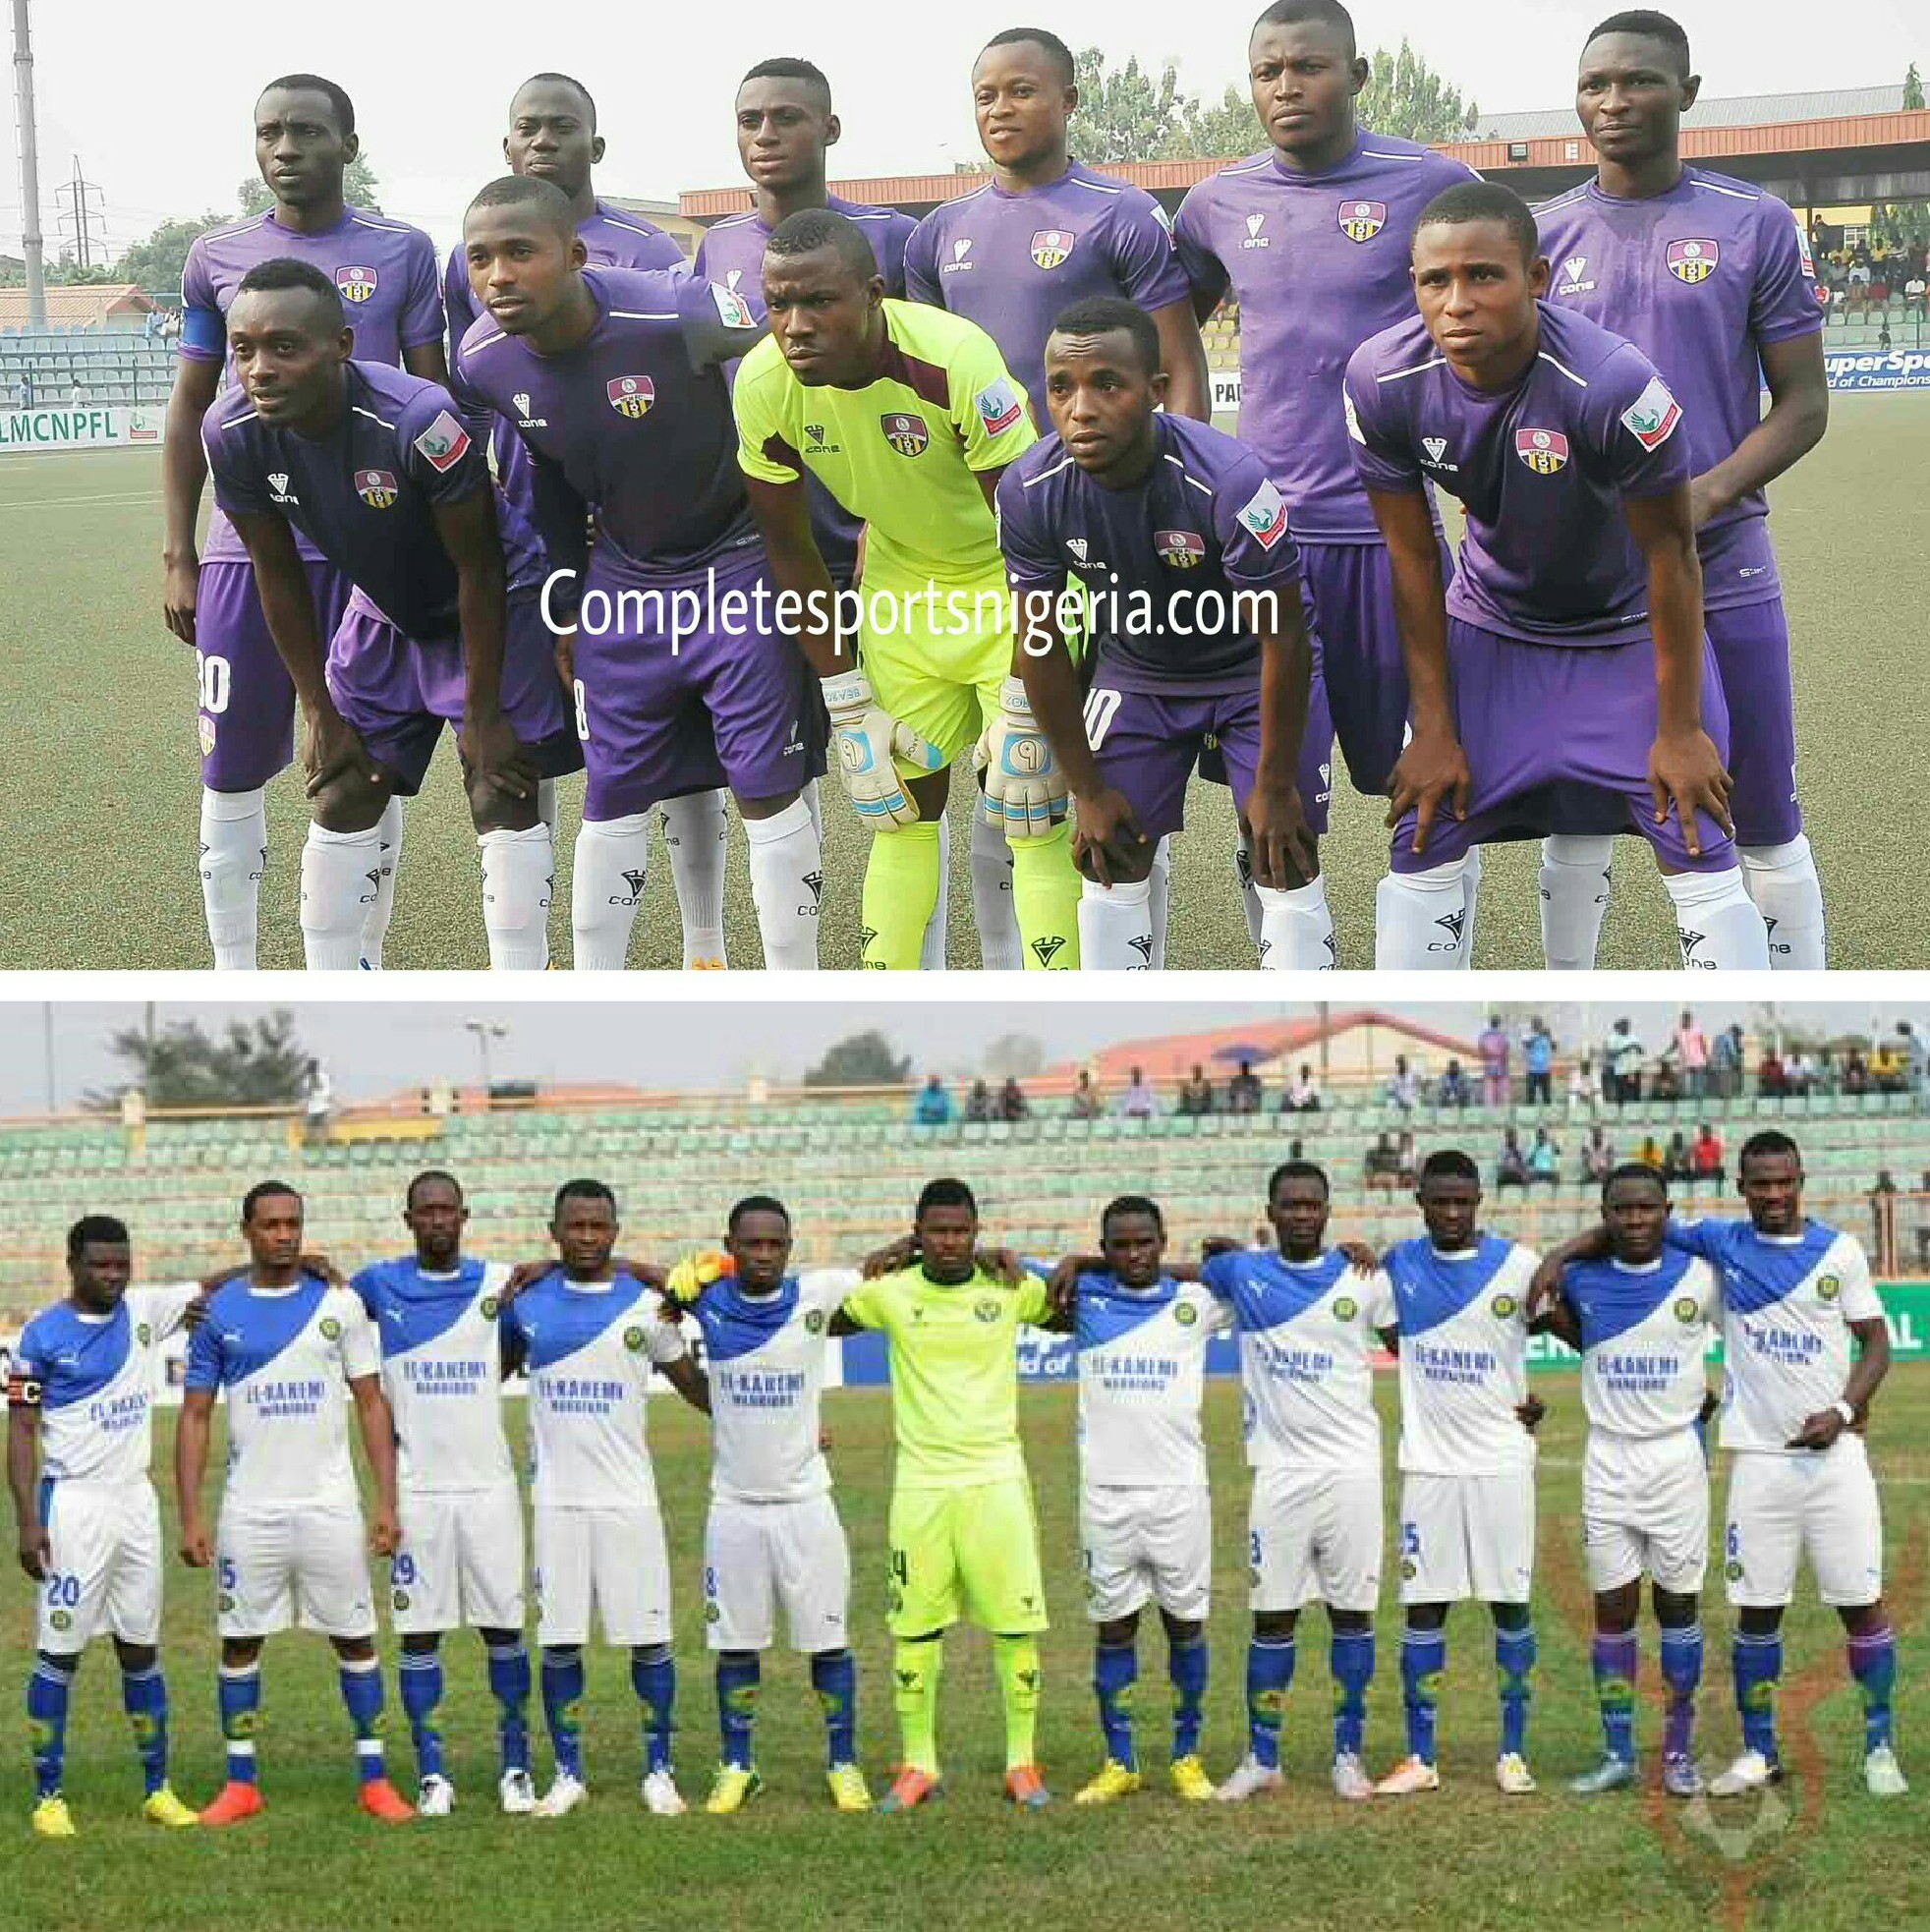 NPFL: Stakes High As Rohr Watches MFM, El-Kanemi Clash In Lagos; 3SC Target 5th Win Against Tornadoes